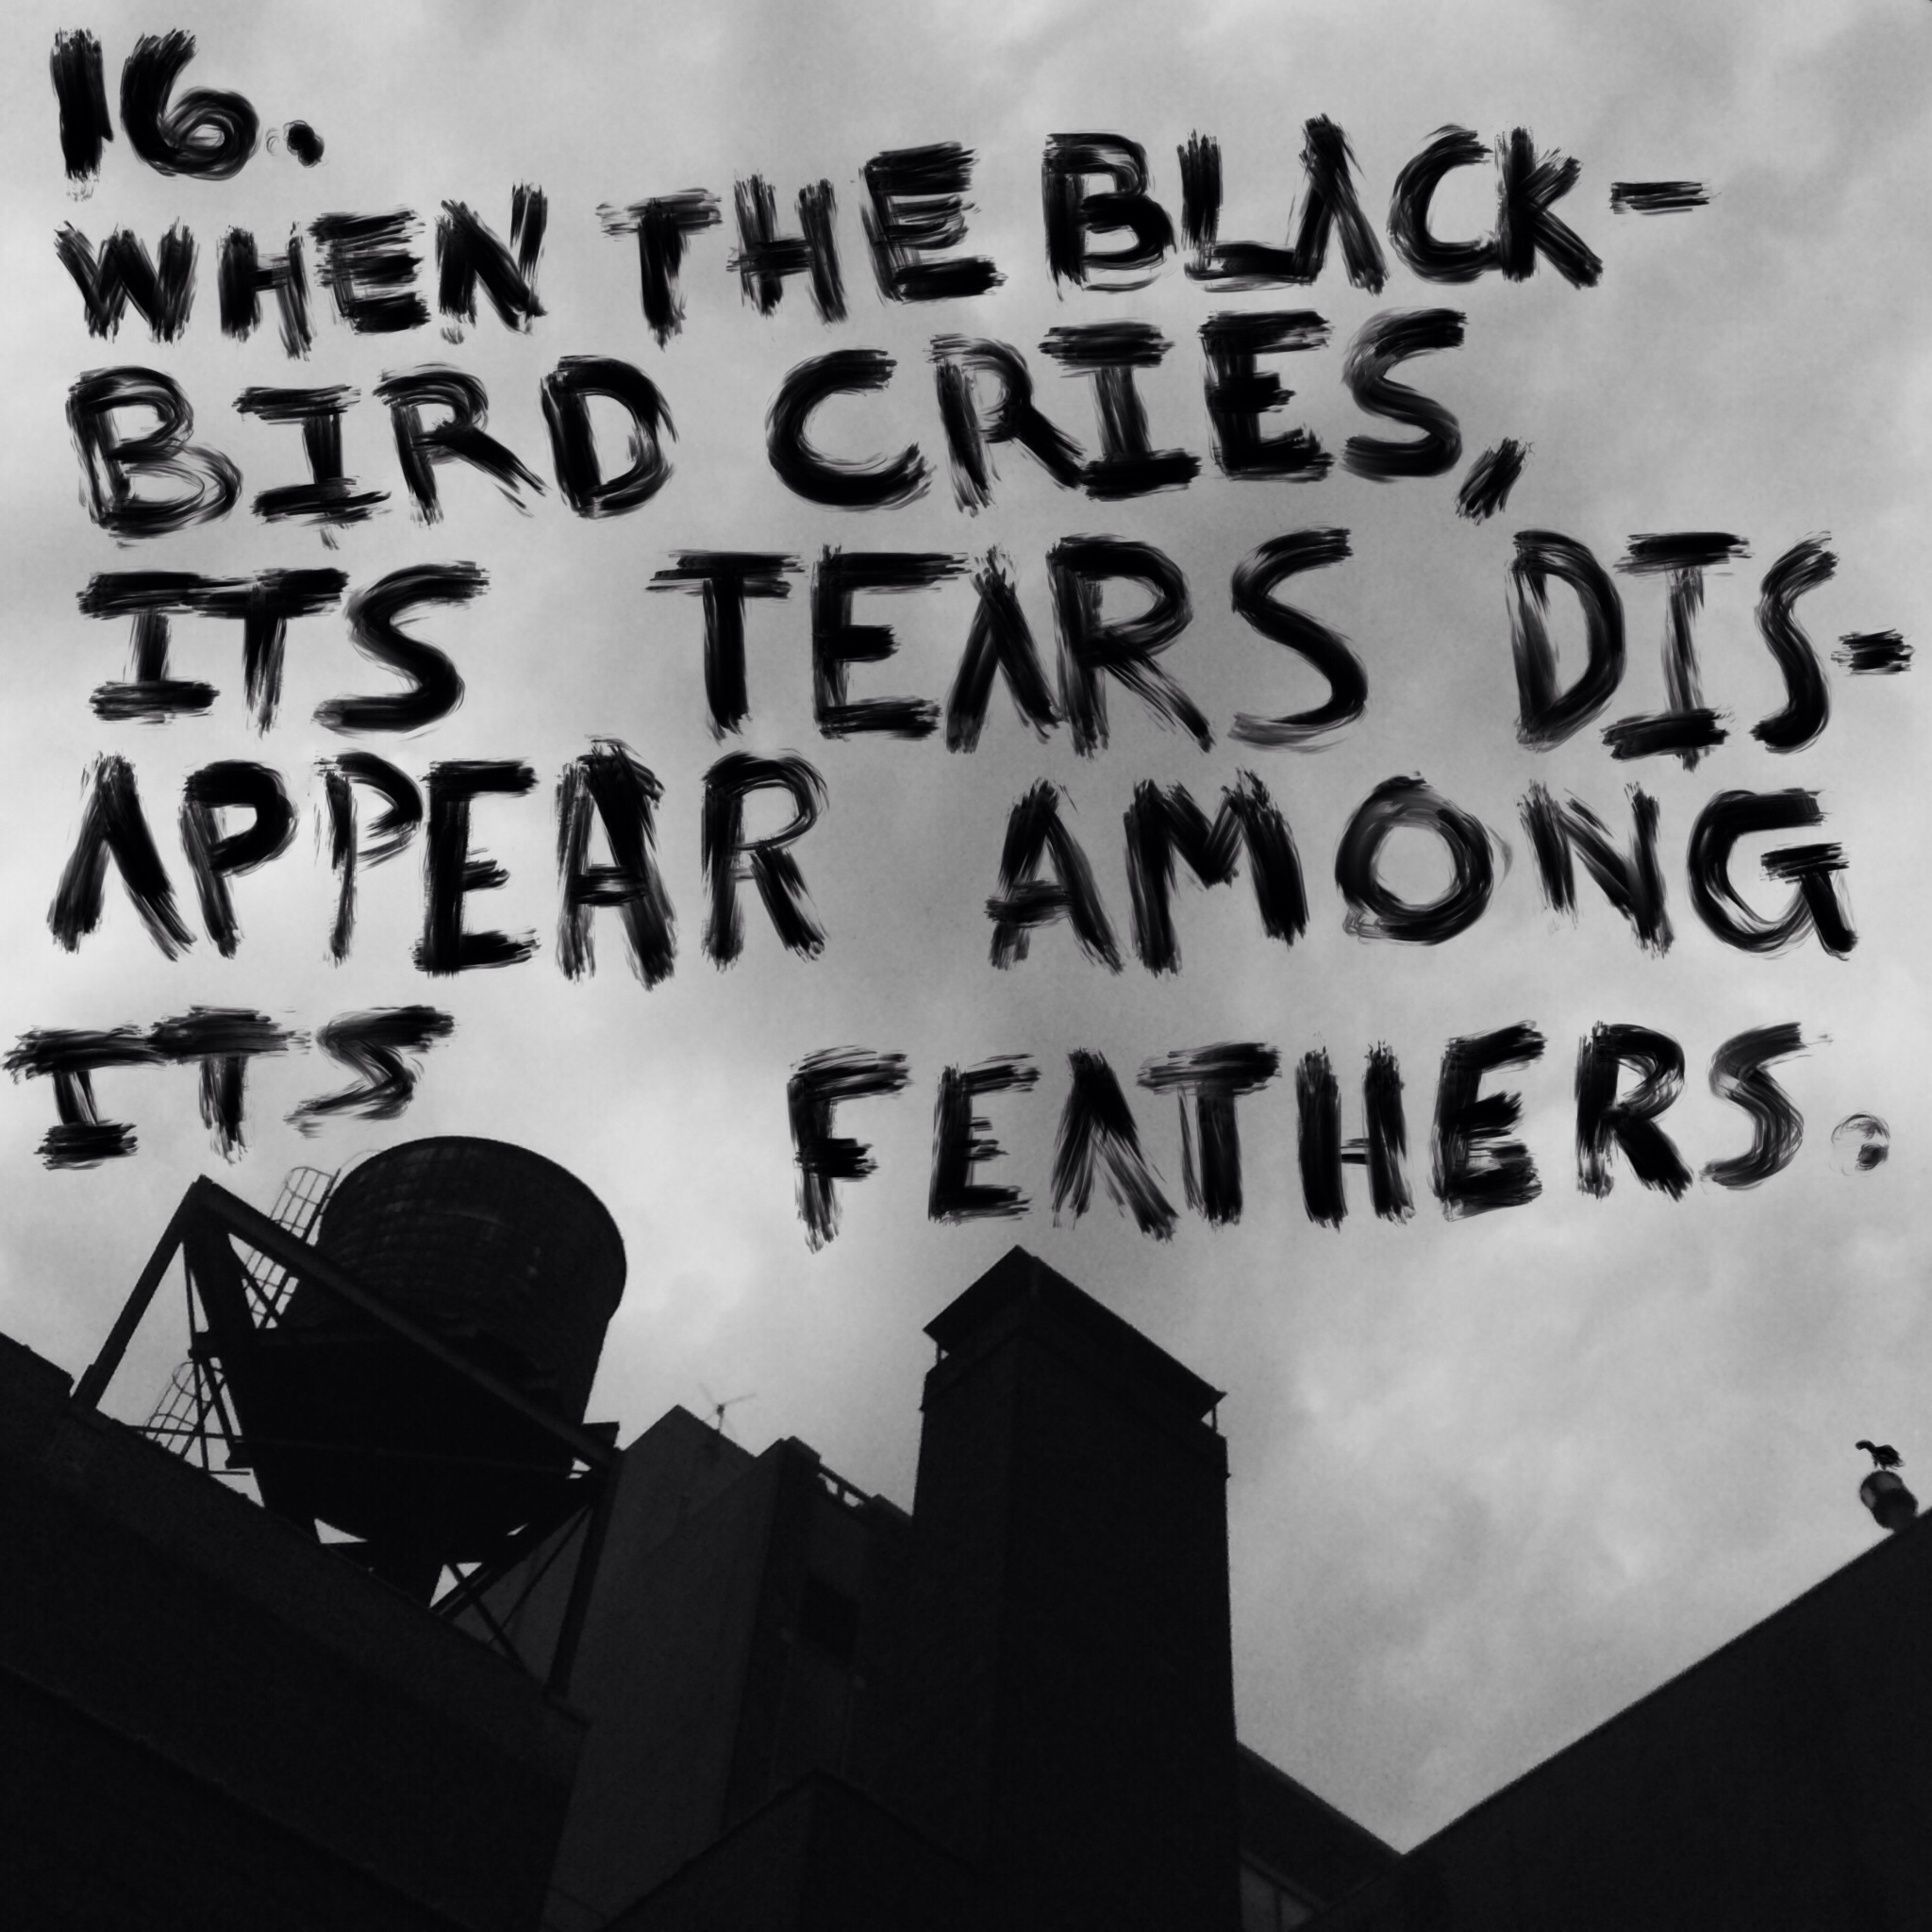 16.  When blackbird cries, its tears disappear among its feathers.